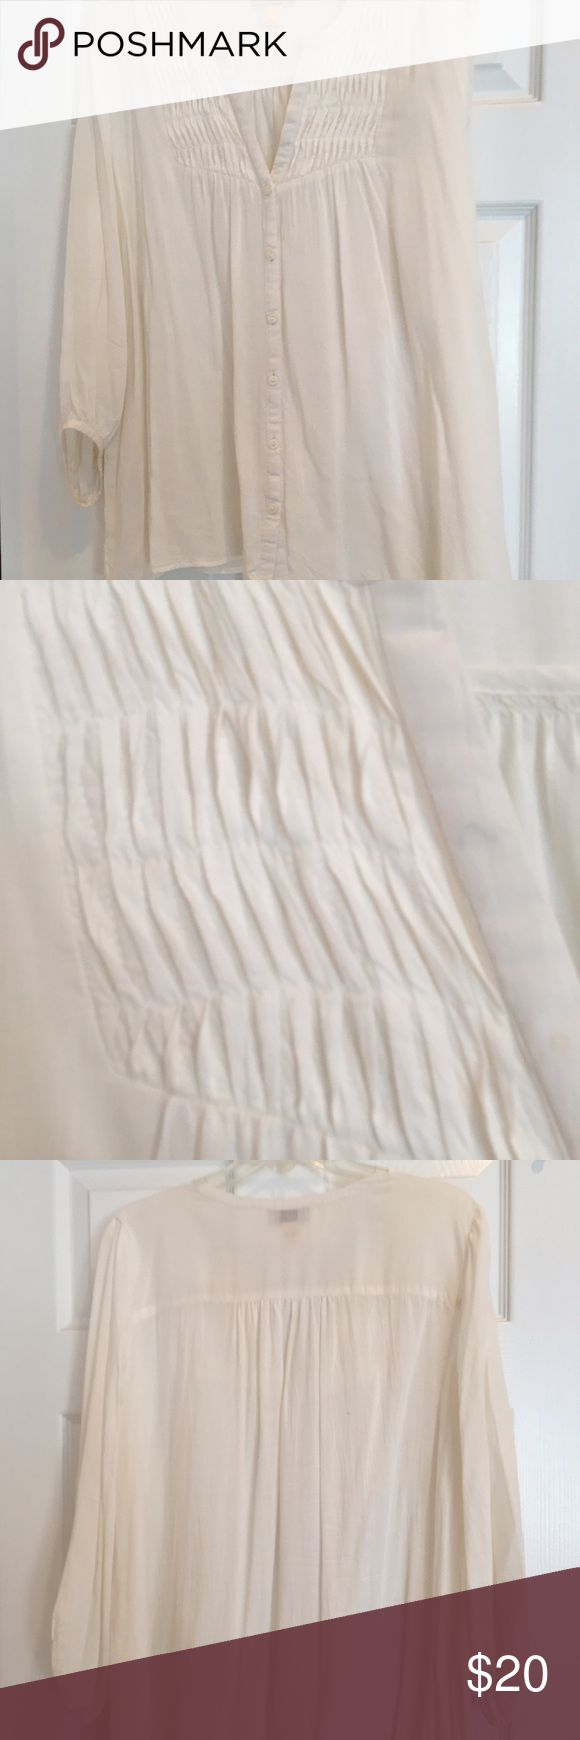 Anne Taylor Loft blouse ivory pintuck 3/4 slv LG Anne Taylor Loft blouse: ivory (almost white), 3/4 sleeve feminine pintuck front, v-neck tiny button front & gathered back. Size LG. Not fitted....flowing. Non-smoking home. Anne Taylor Tops Blouses